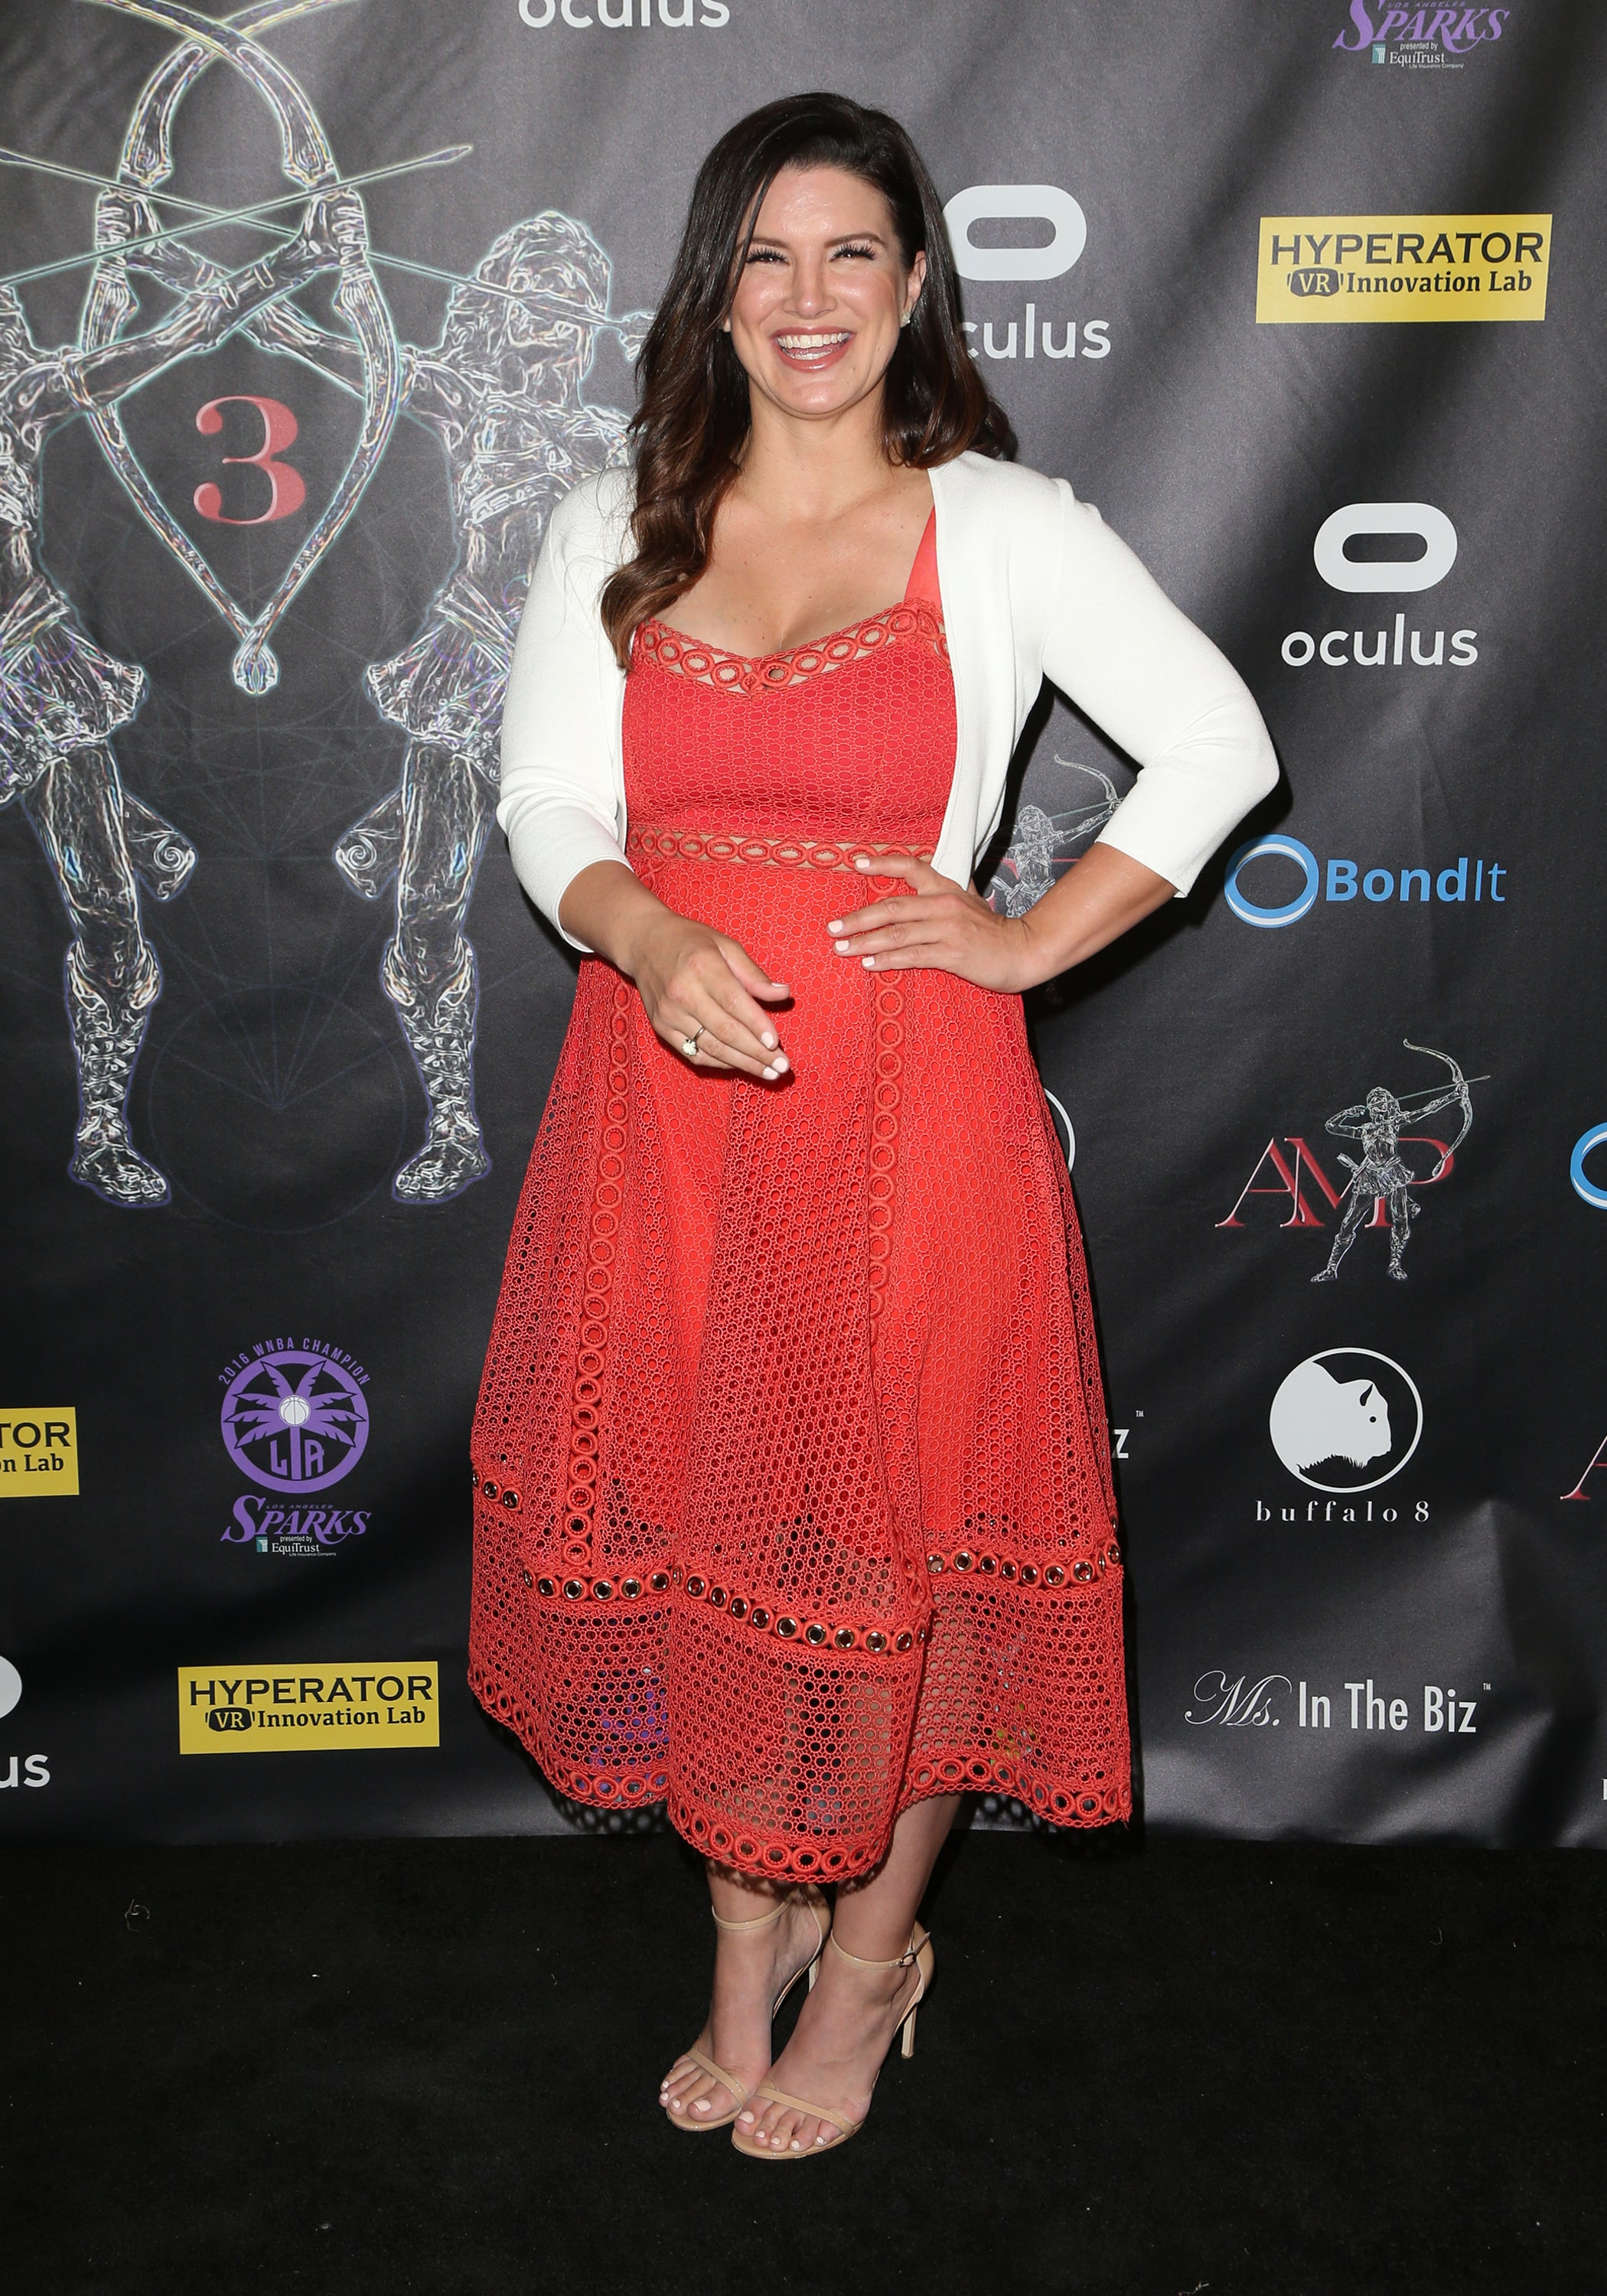 Gina Carano hot cleavage in red